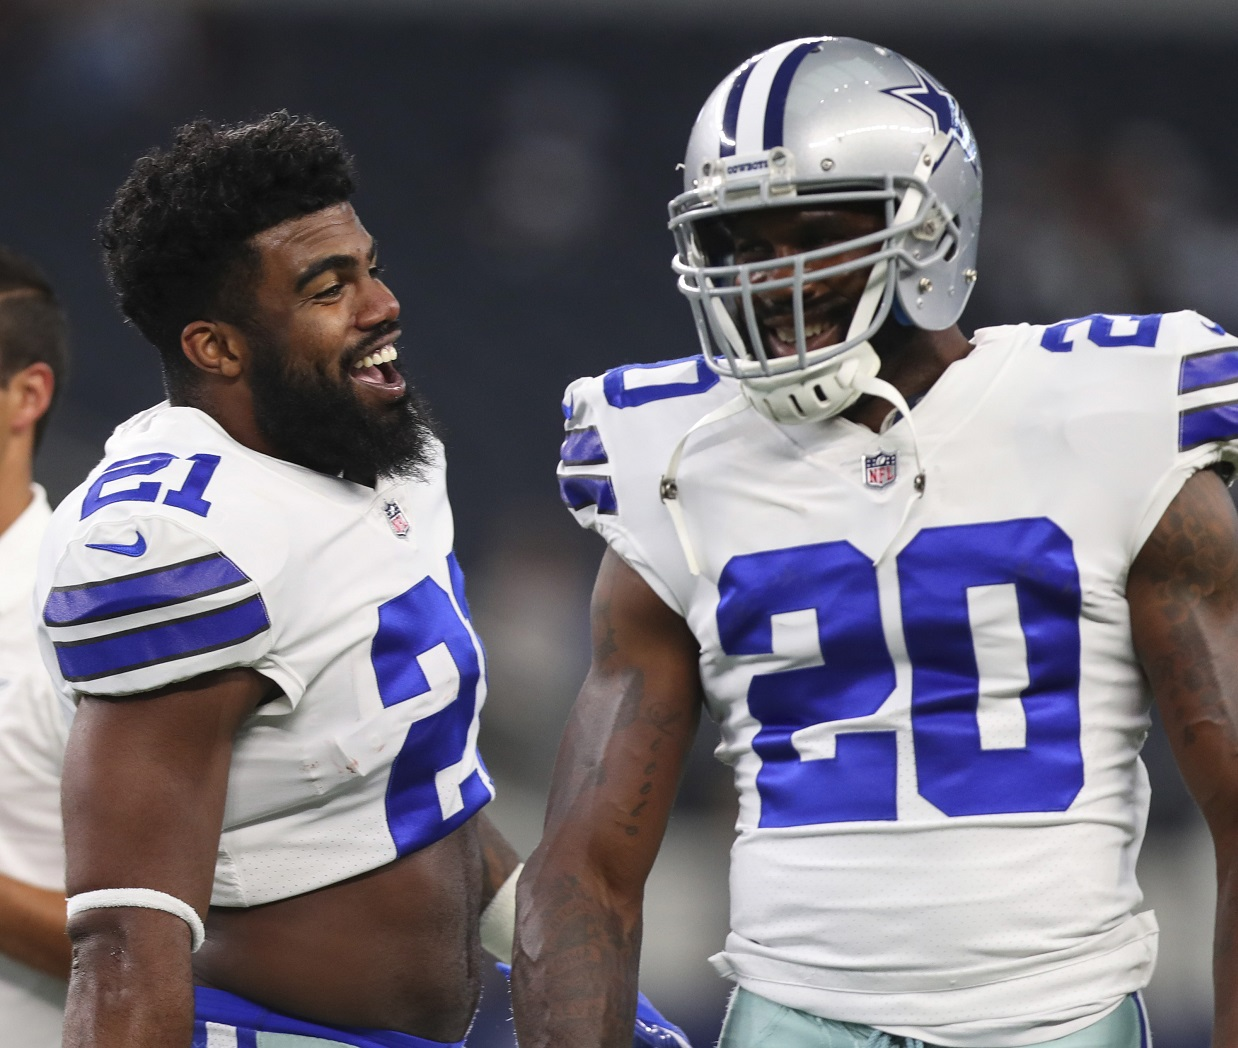 Ezekiel Elliott Suspension Reportedly Won't Start Until Petition Resolved